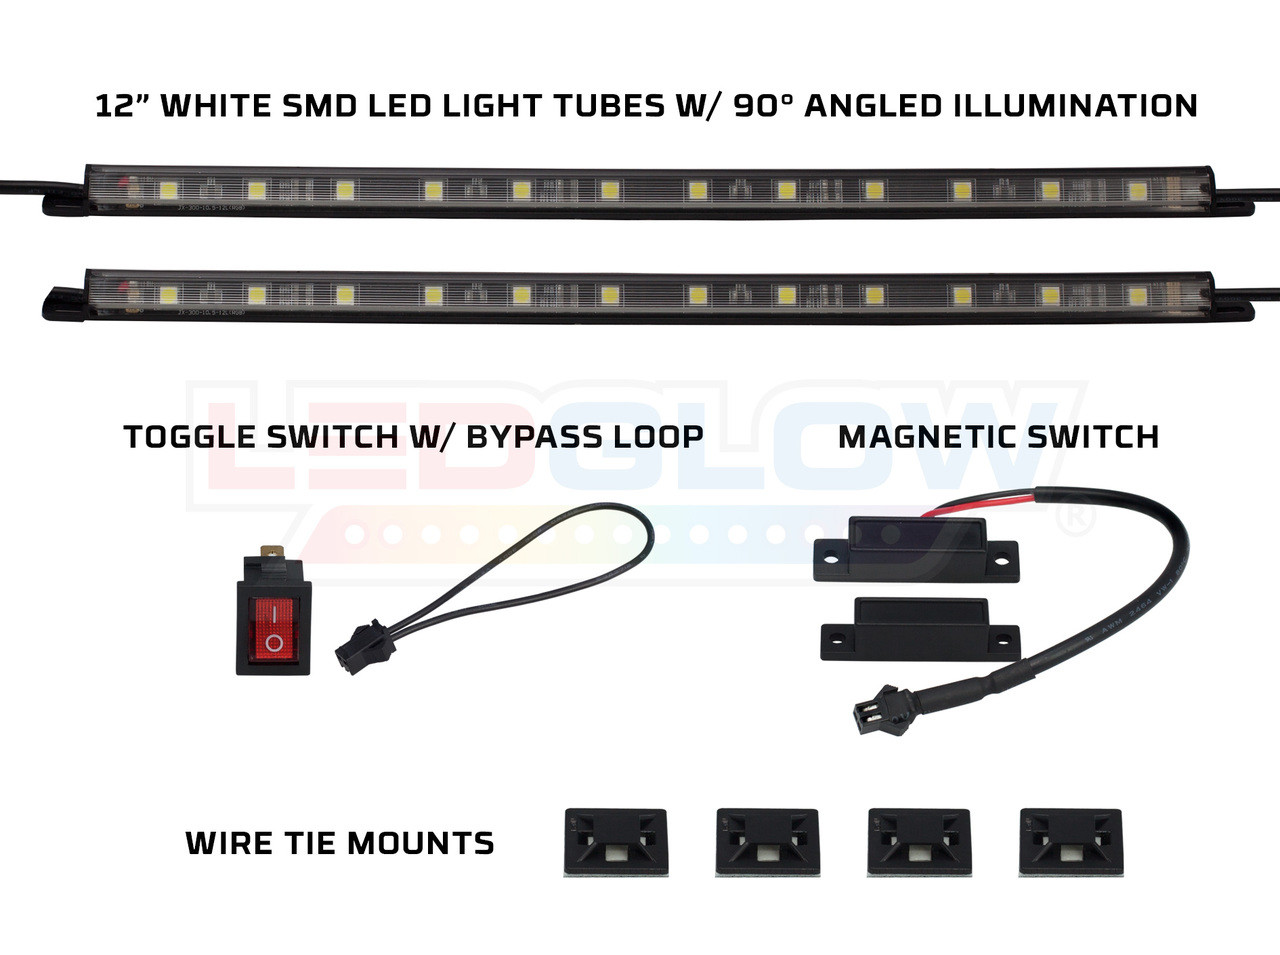 medium resolution of 2pc 12 white smd led light tubes toggle switch magnetic switch